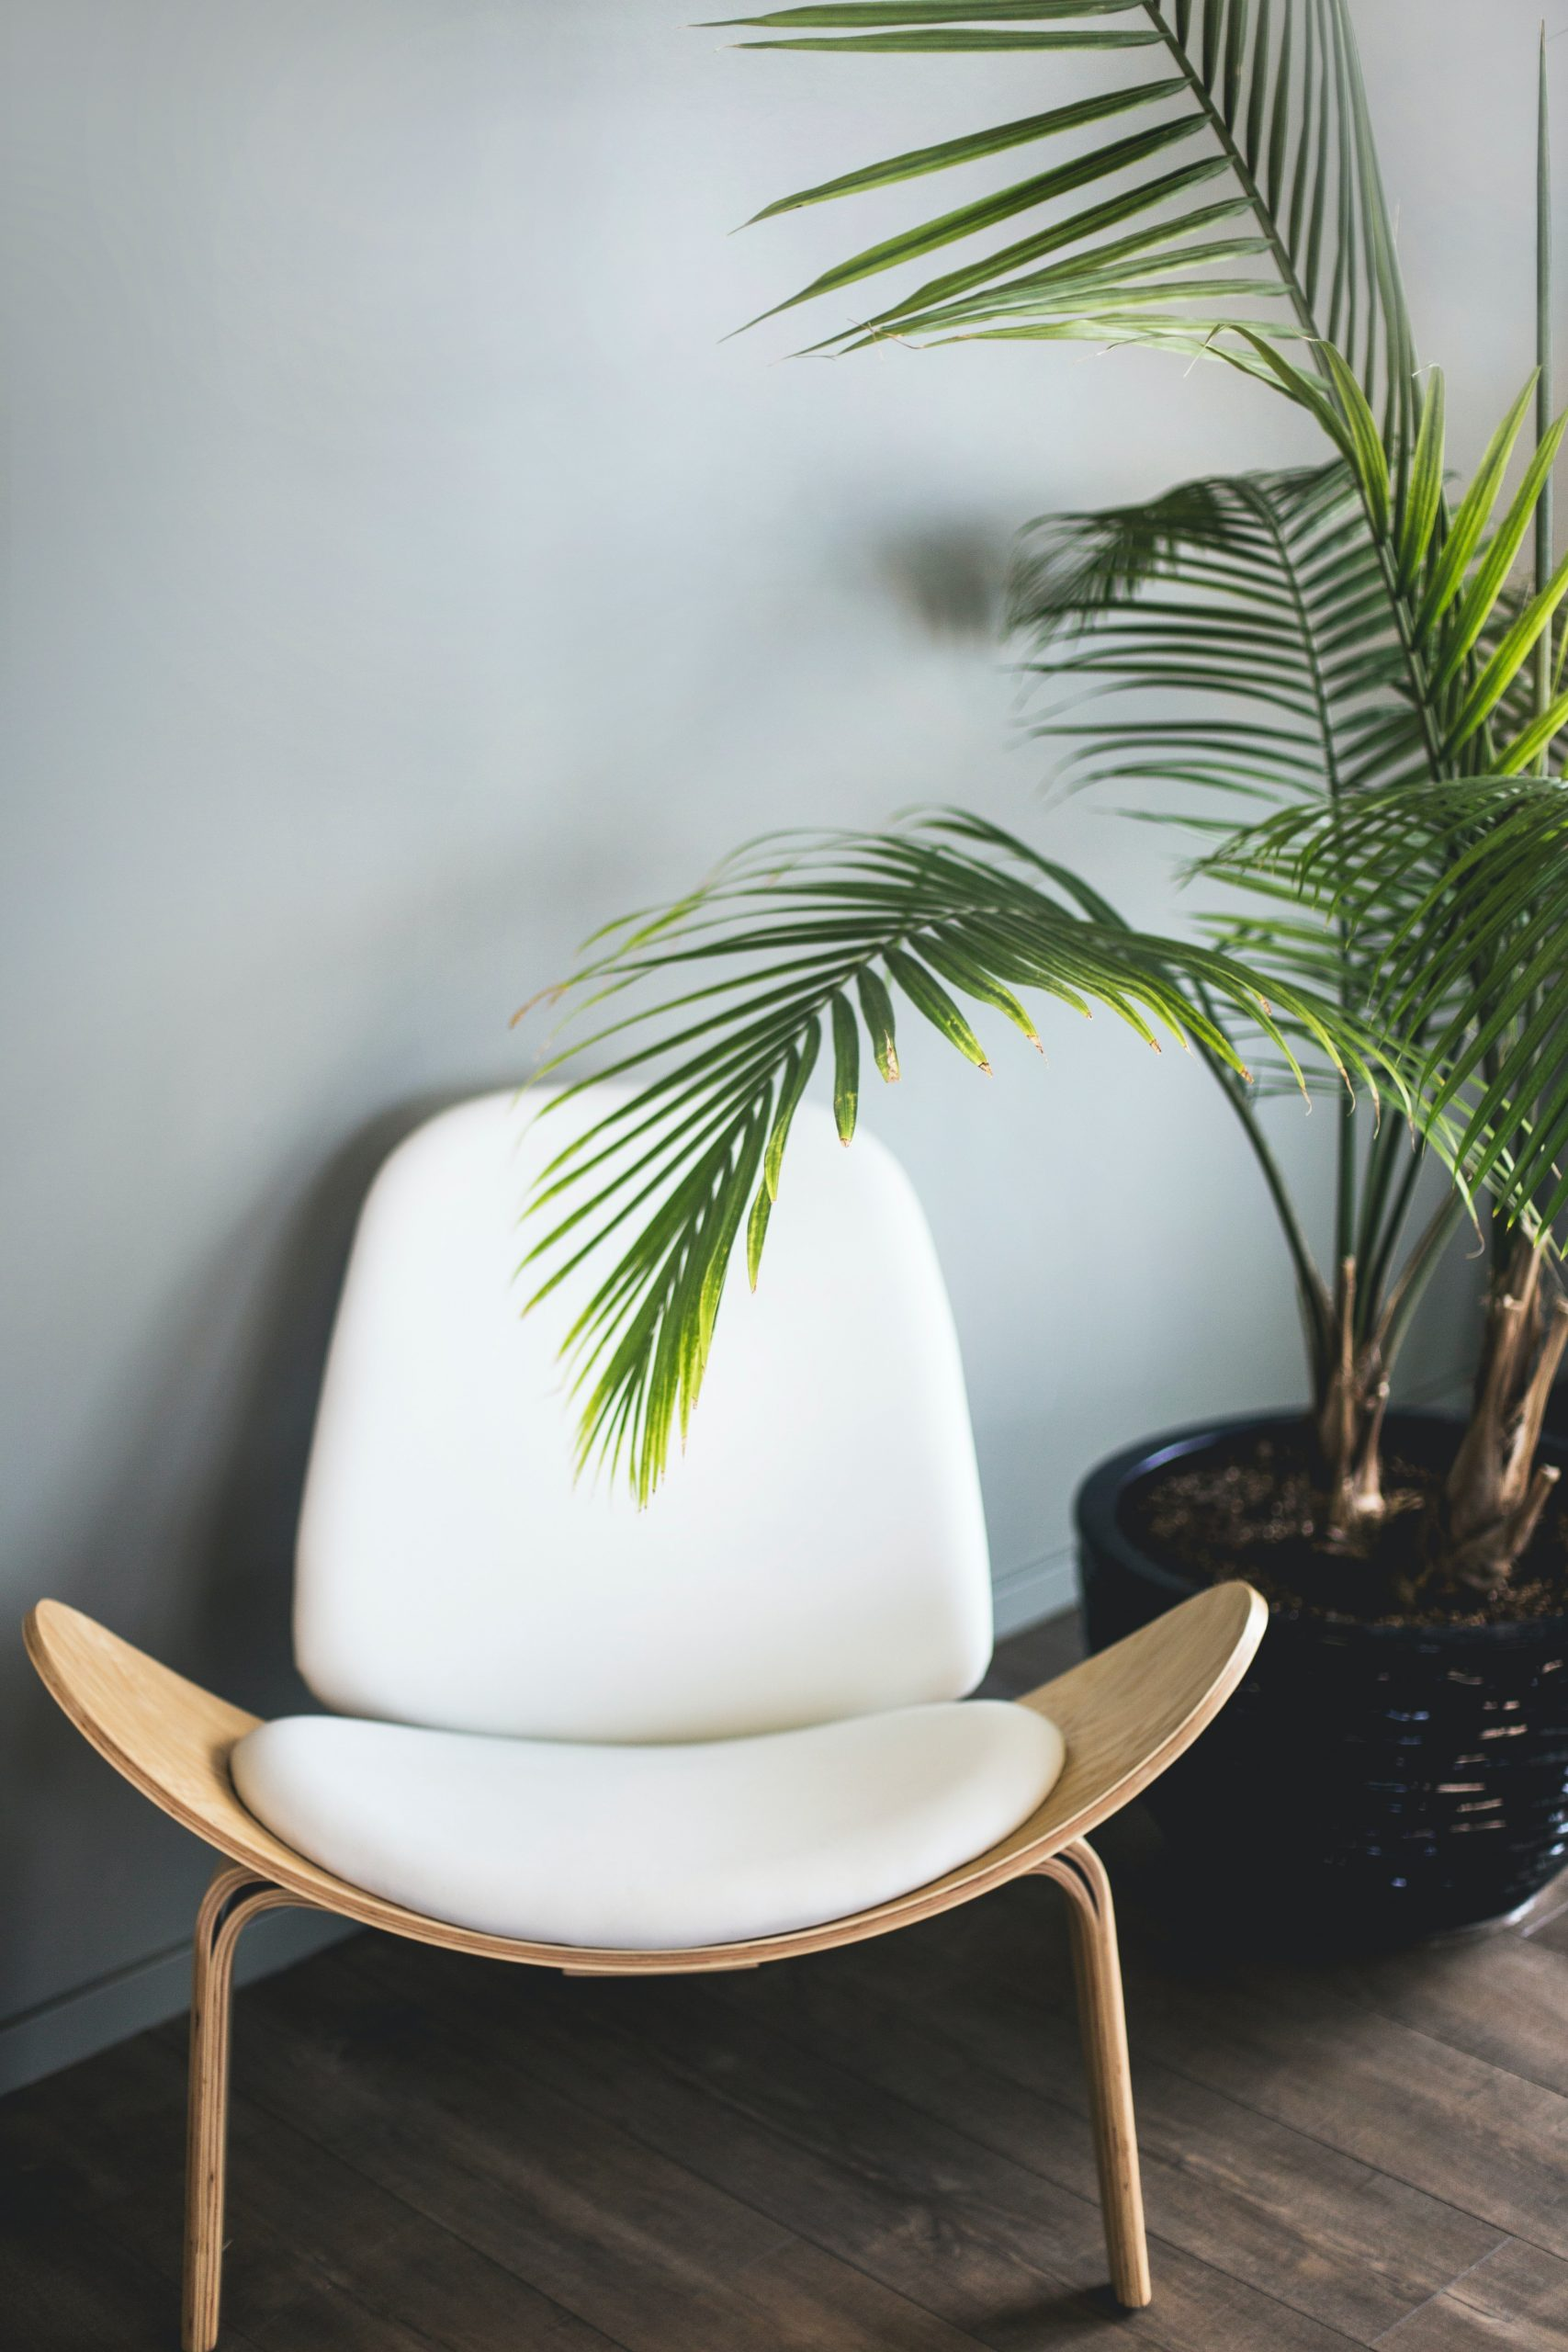 brown wooden chair beside plant